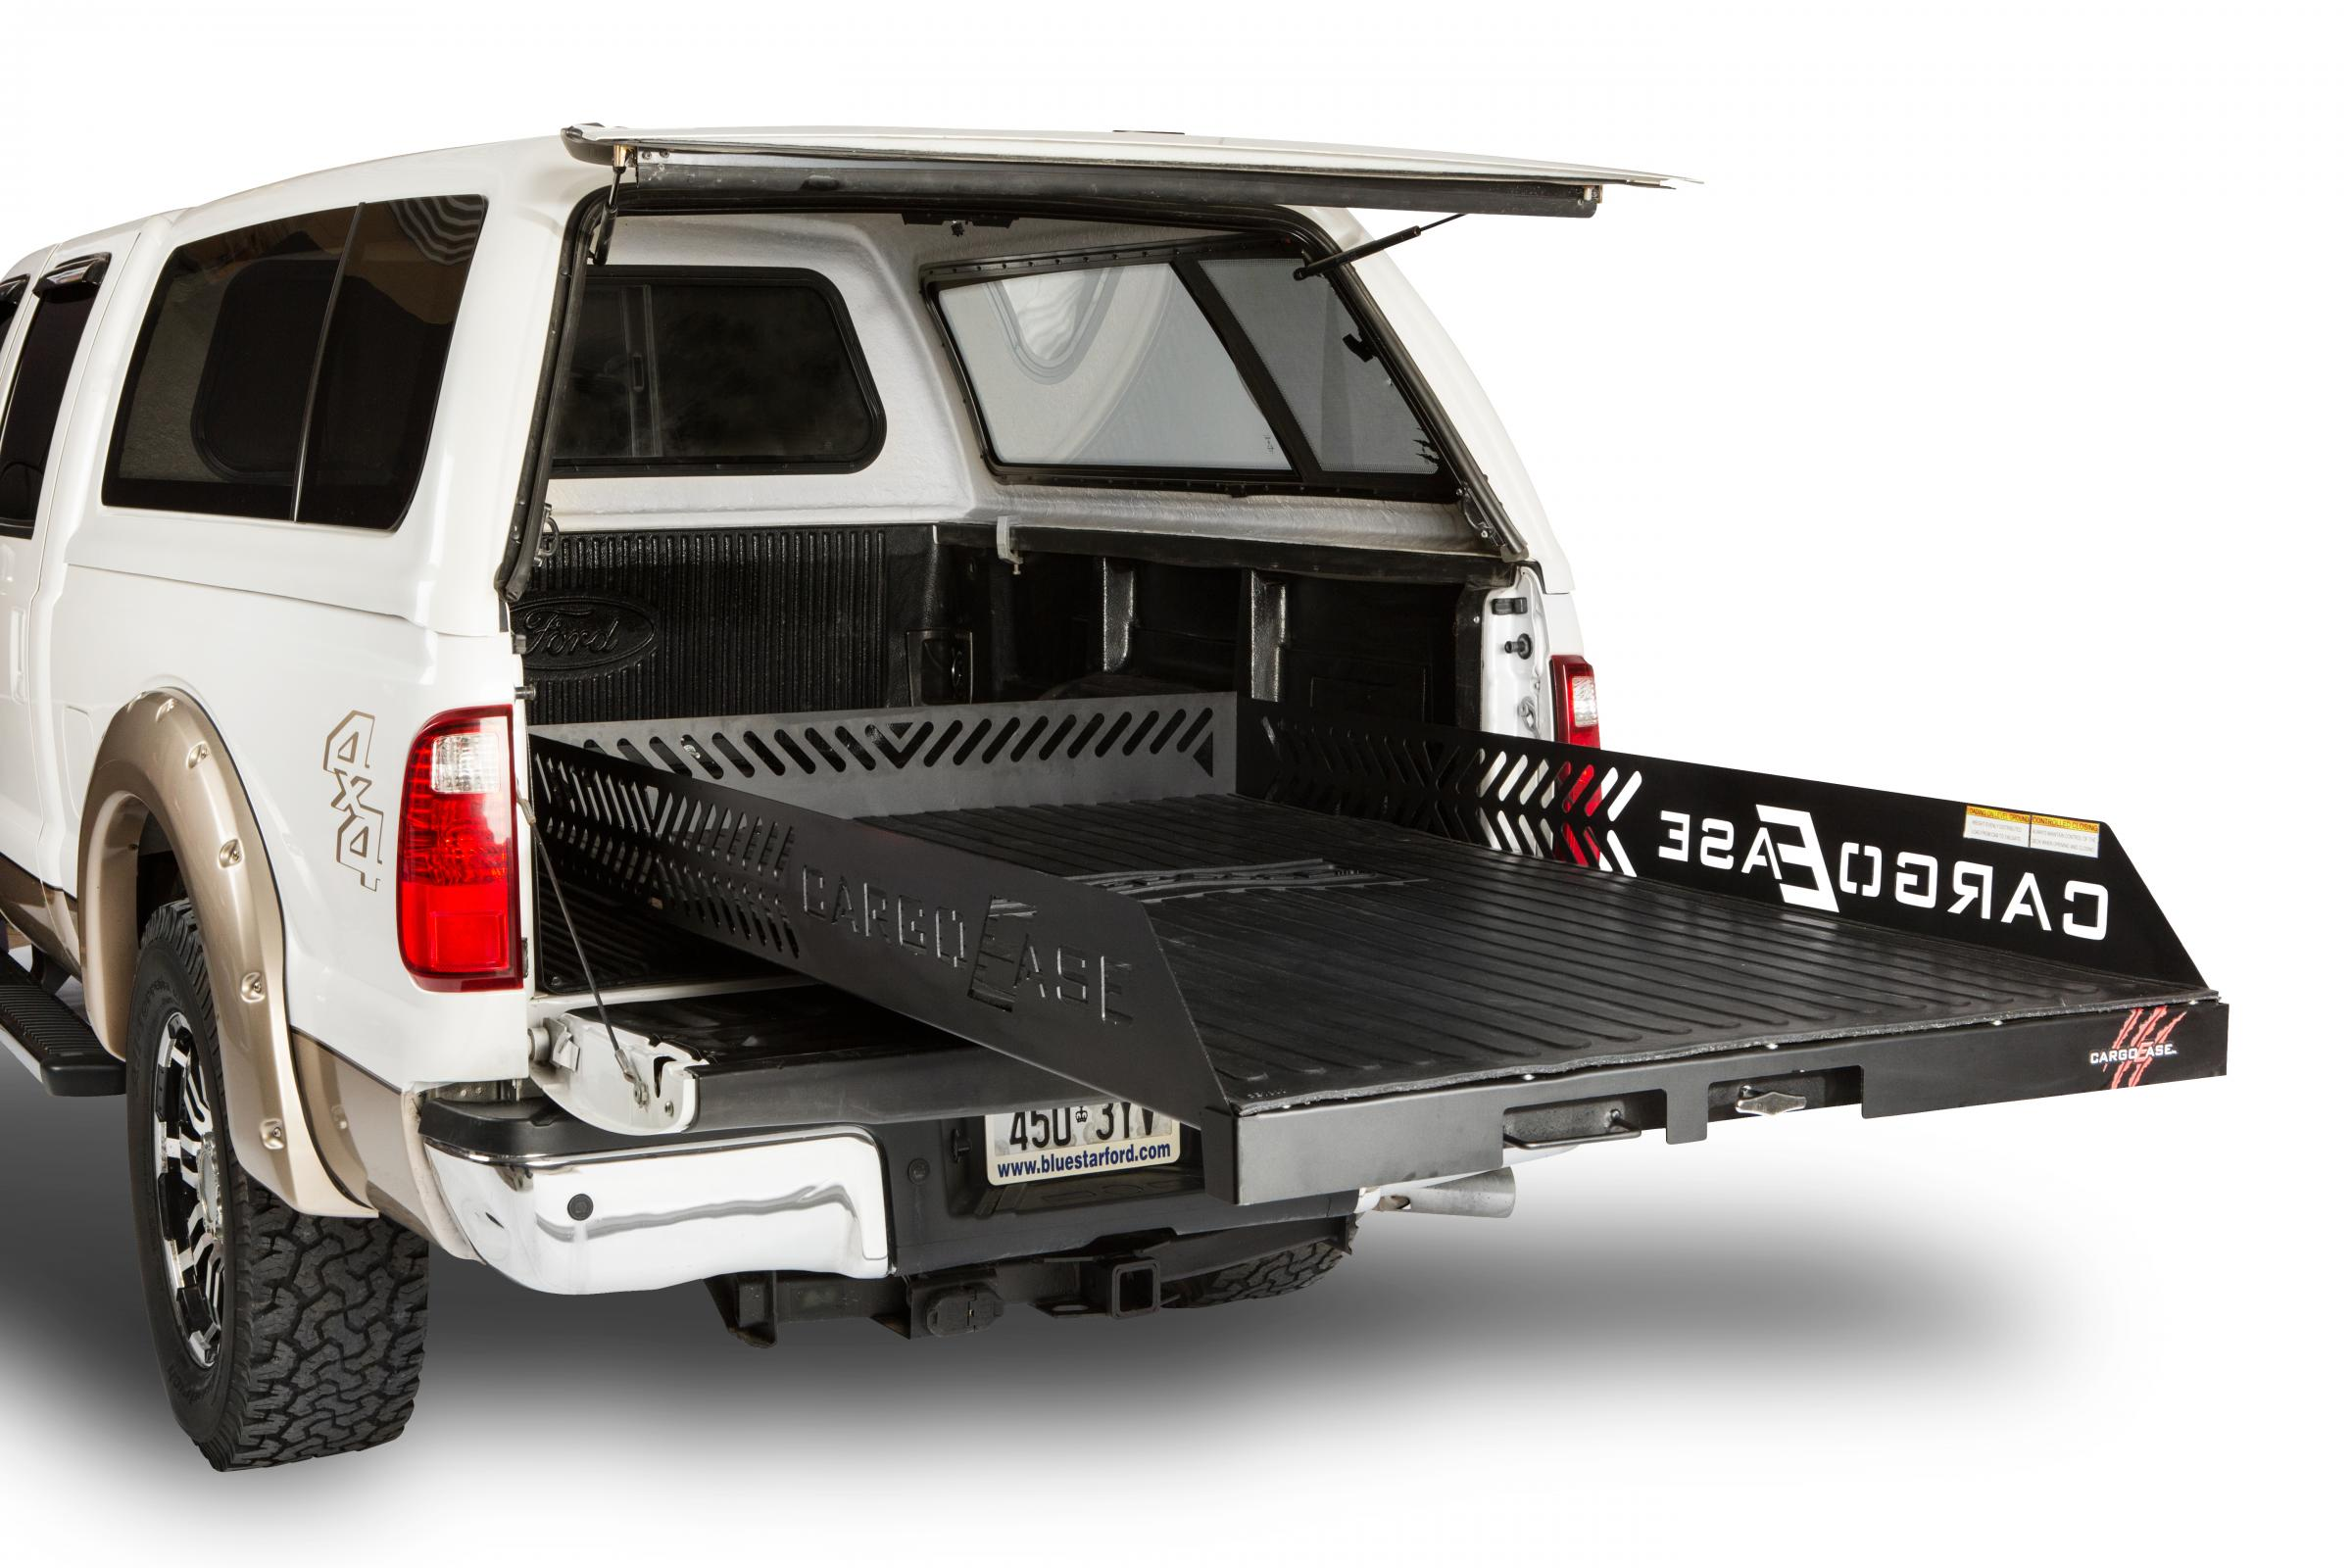 CE7548C15 Cargo Ease Bed Slide 1500 Pound Capacity